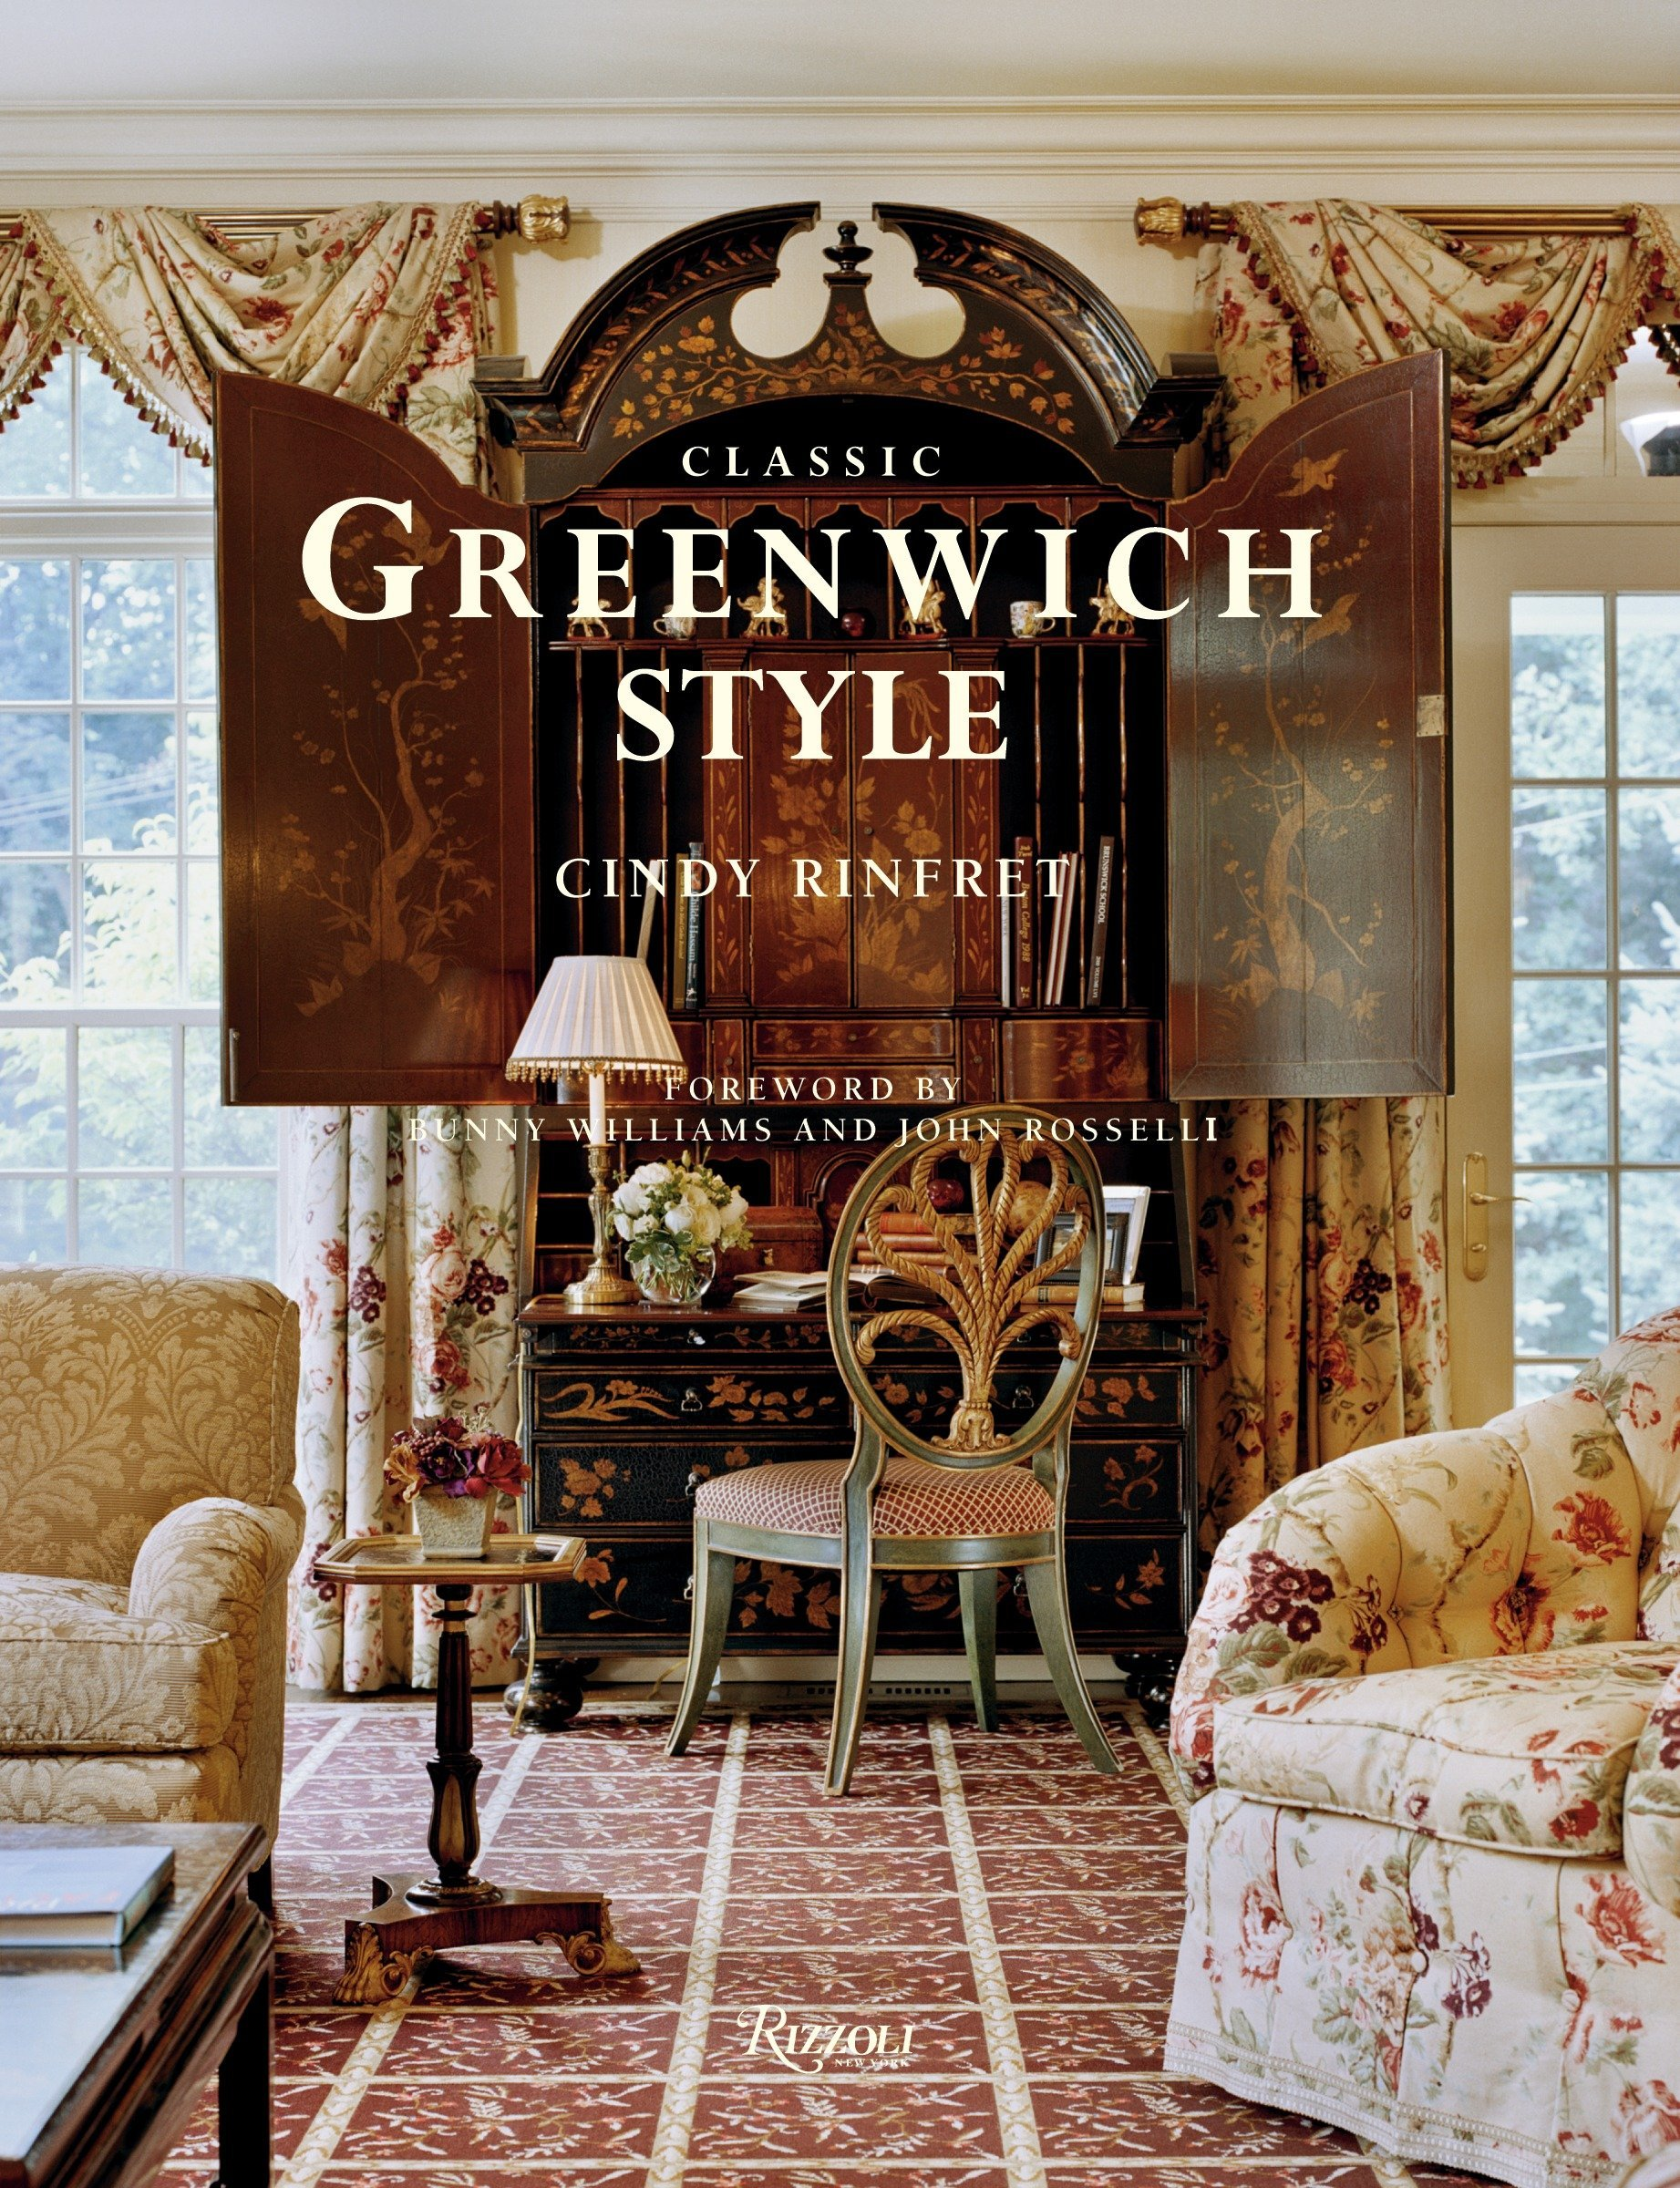 Classic Greenwich Style Cindy Rinfret 9780847828463